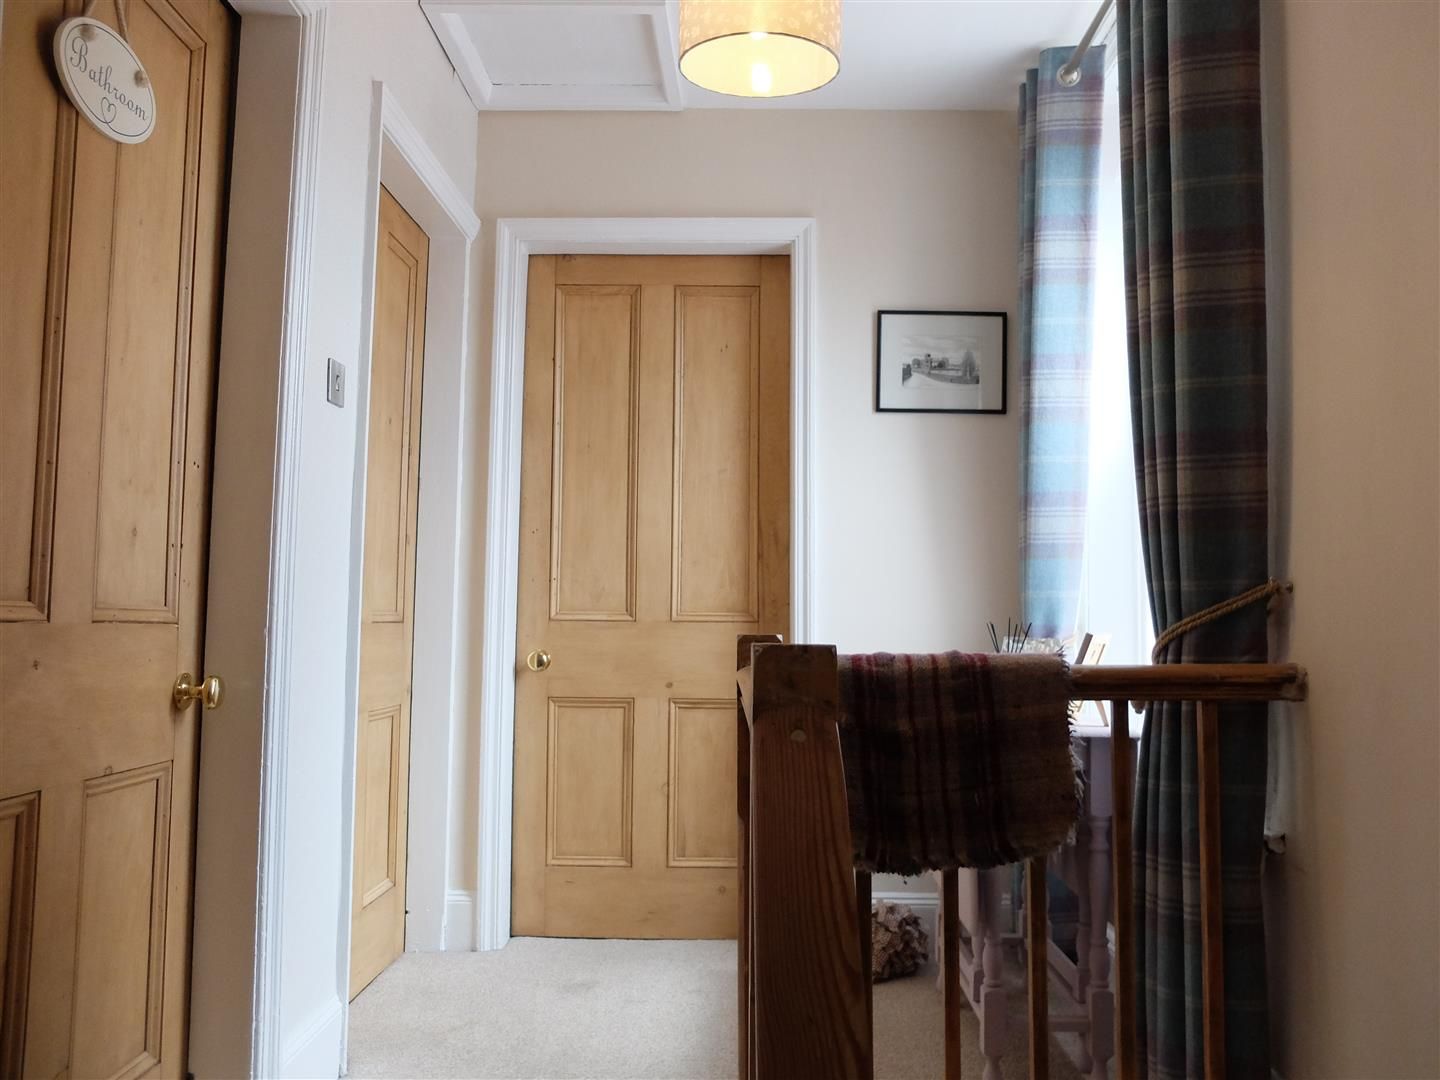 2 Bedrooms House - End Terrace For Sale 2 Ruthella Street Carlisle 100,000